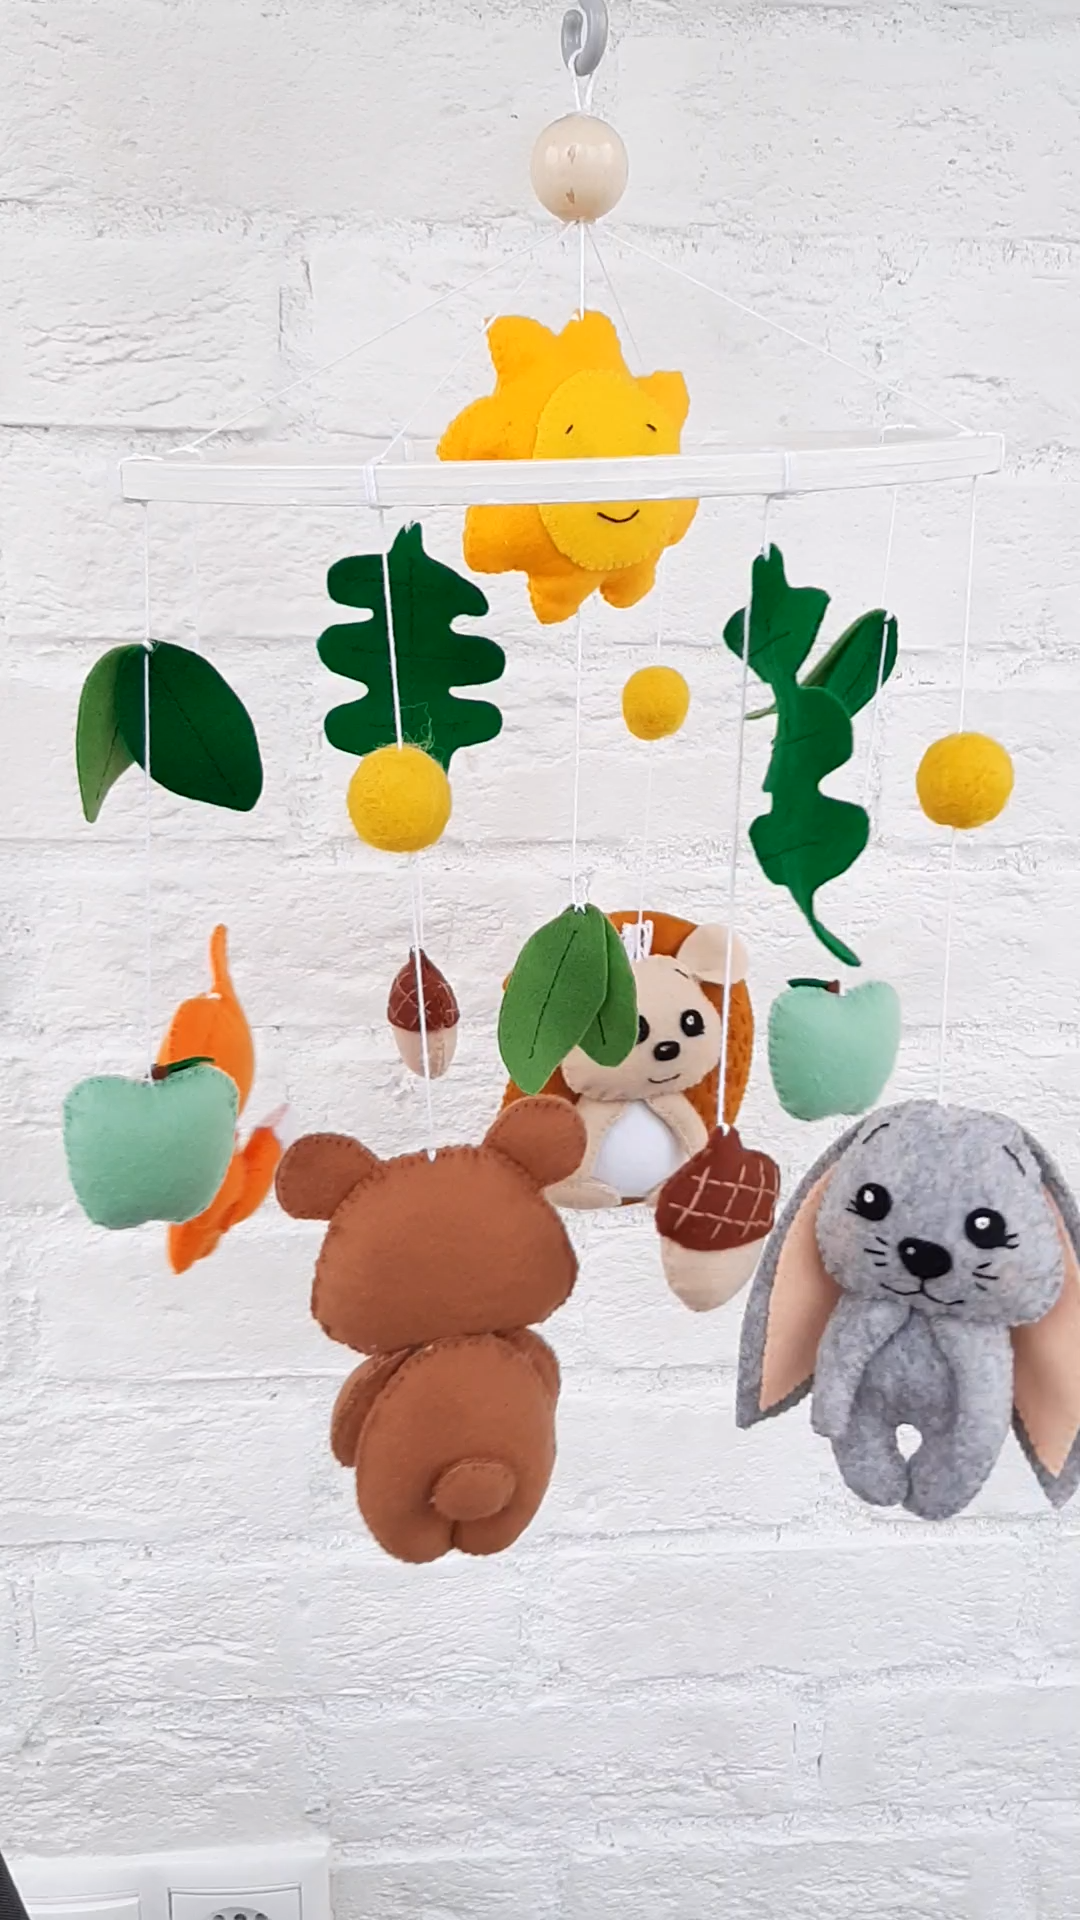 Woodland crib mobile with cute felt animals as forest baby shower gift idea -  This woodland crib mobile with felt bear, hare, hedgehog, fox, sun, acorns and apples is made to be - #Animals #Baby #BabyShowersbanner #BabyShowersdrinks #BabyShowersflowers #BabyShowersideen #BabyShowersindian #BabyShowersletras #BabyShowersnena #BabyShowersquotes #BabyShowerssigns #BabyShowerstwins #BabyShowersvideos #crib #Cute #fallBabyShowers #felt #Forest #gift #idea #mobile #Shower #winniethepoohBabyShowers #